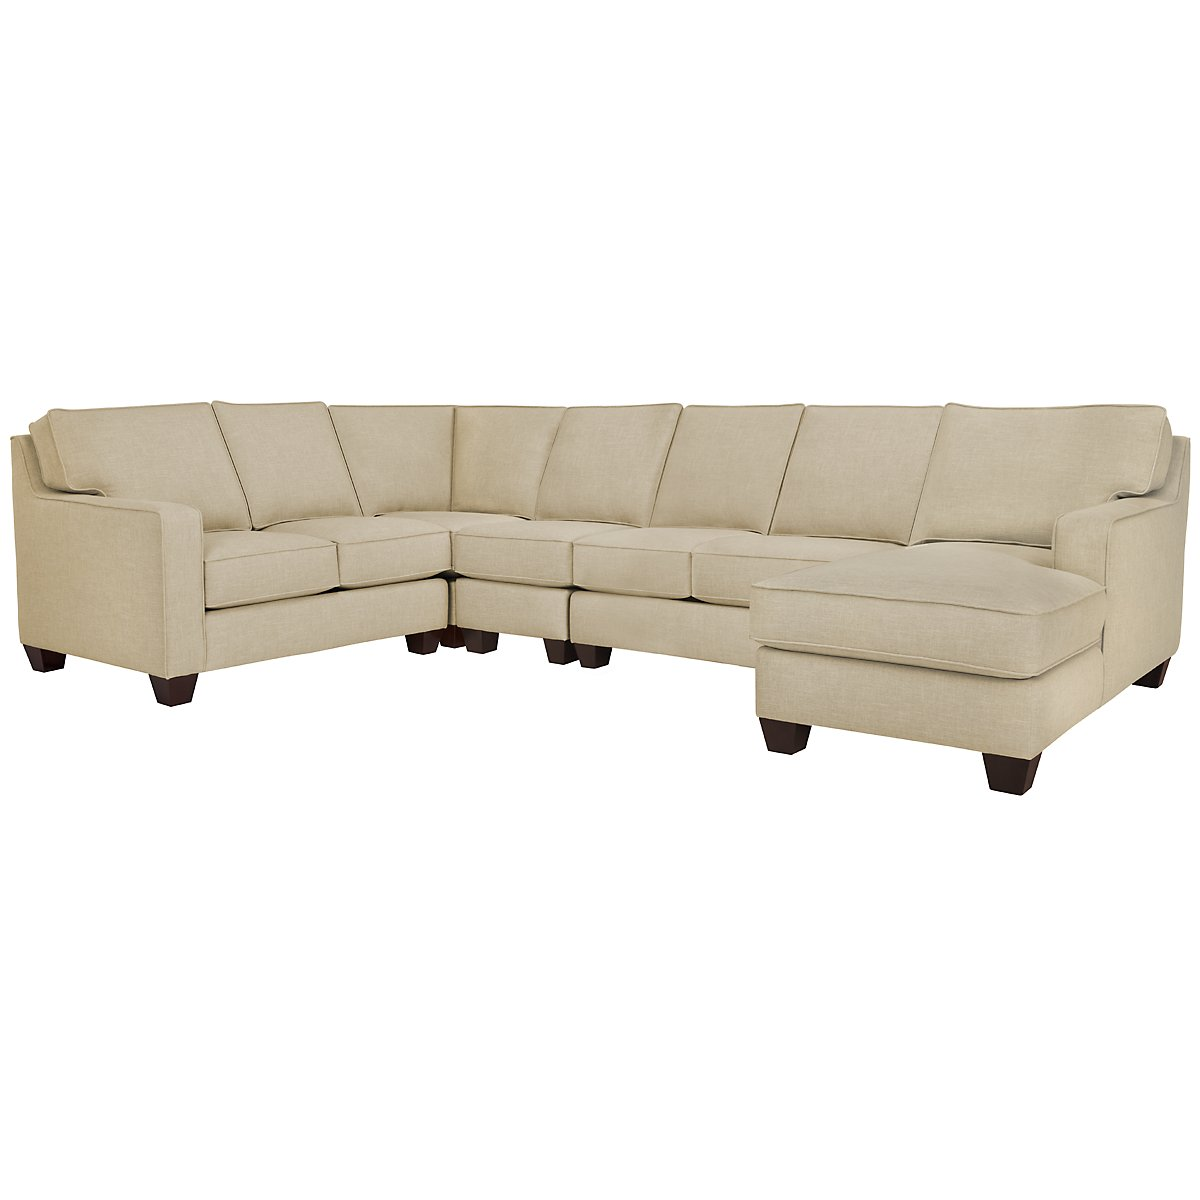 York Beige Fabric Large Right Chaise Sectional